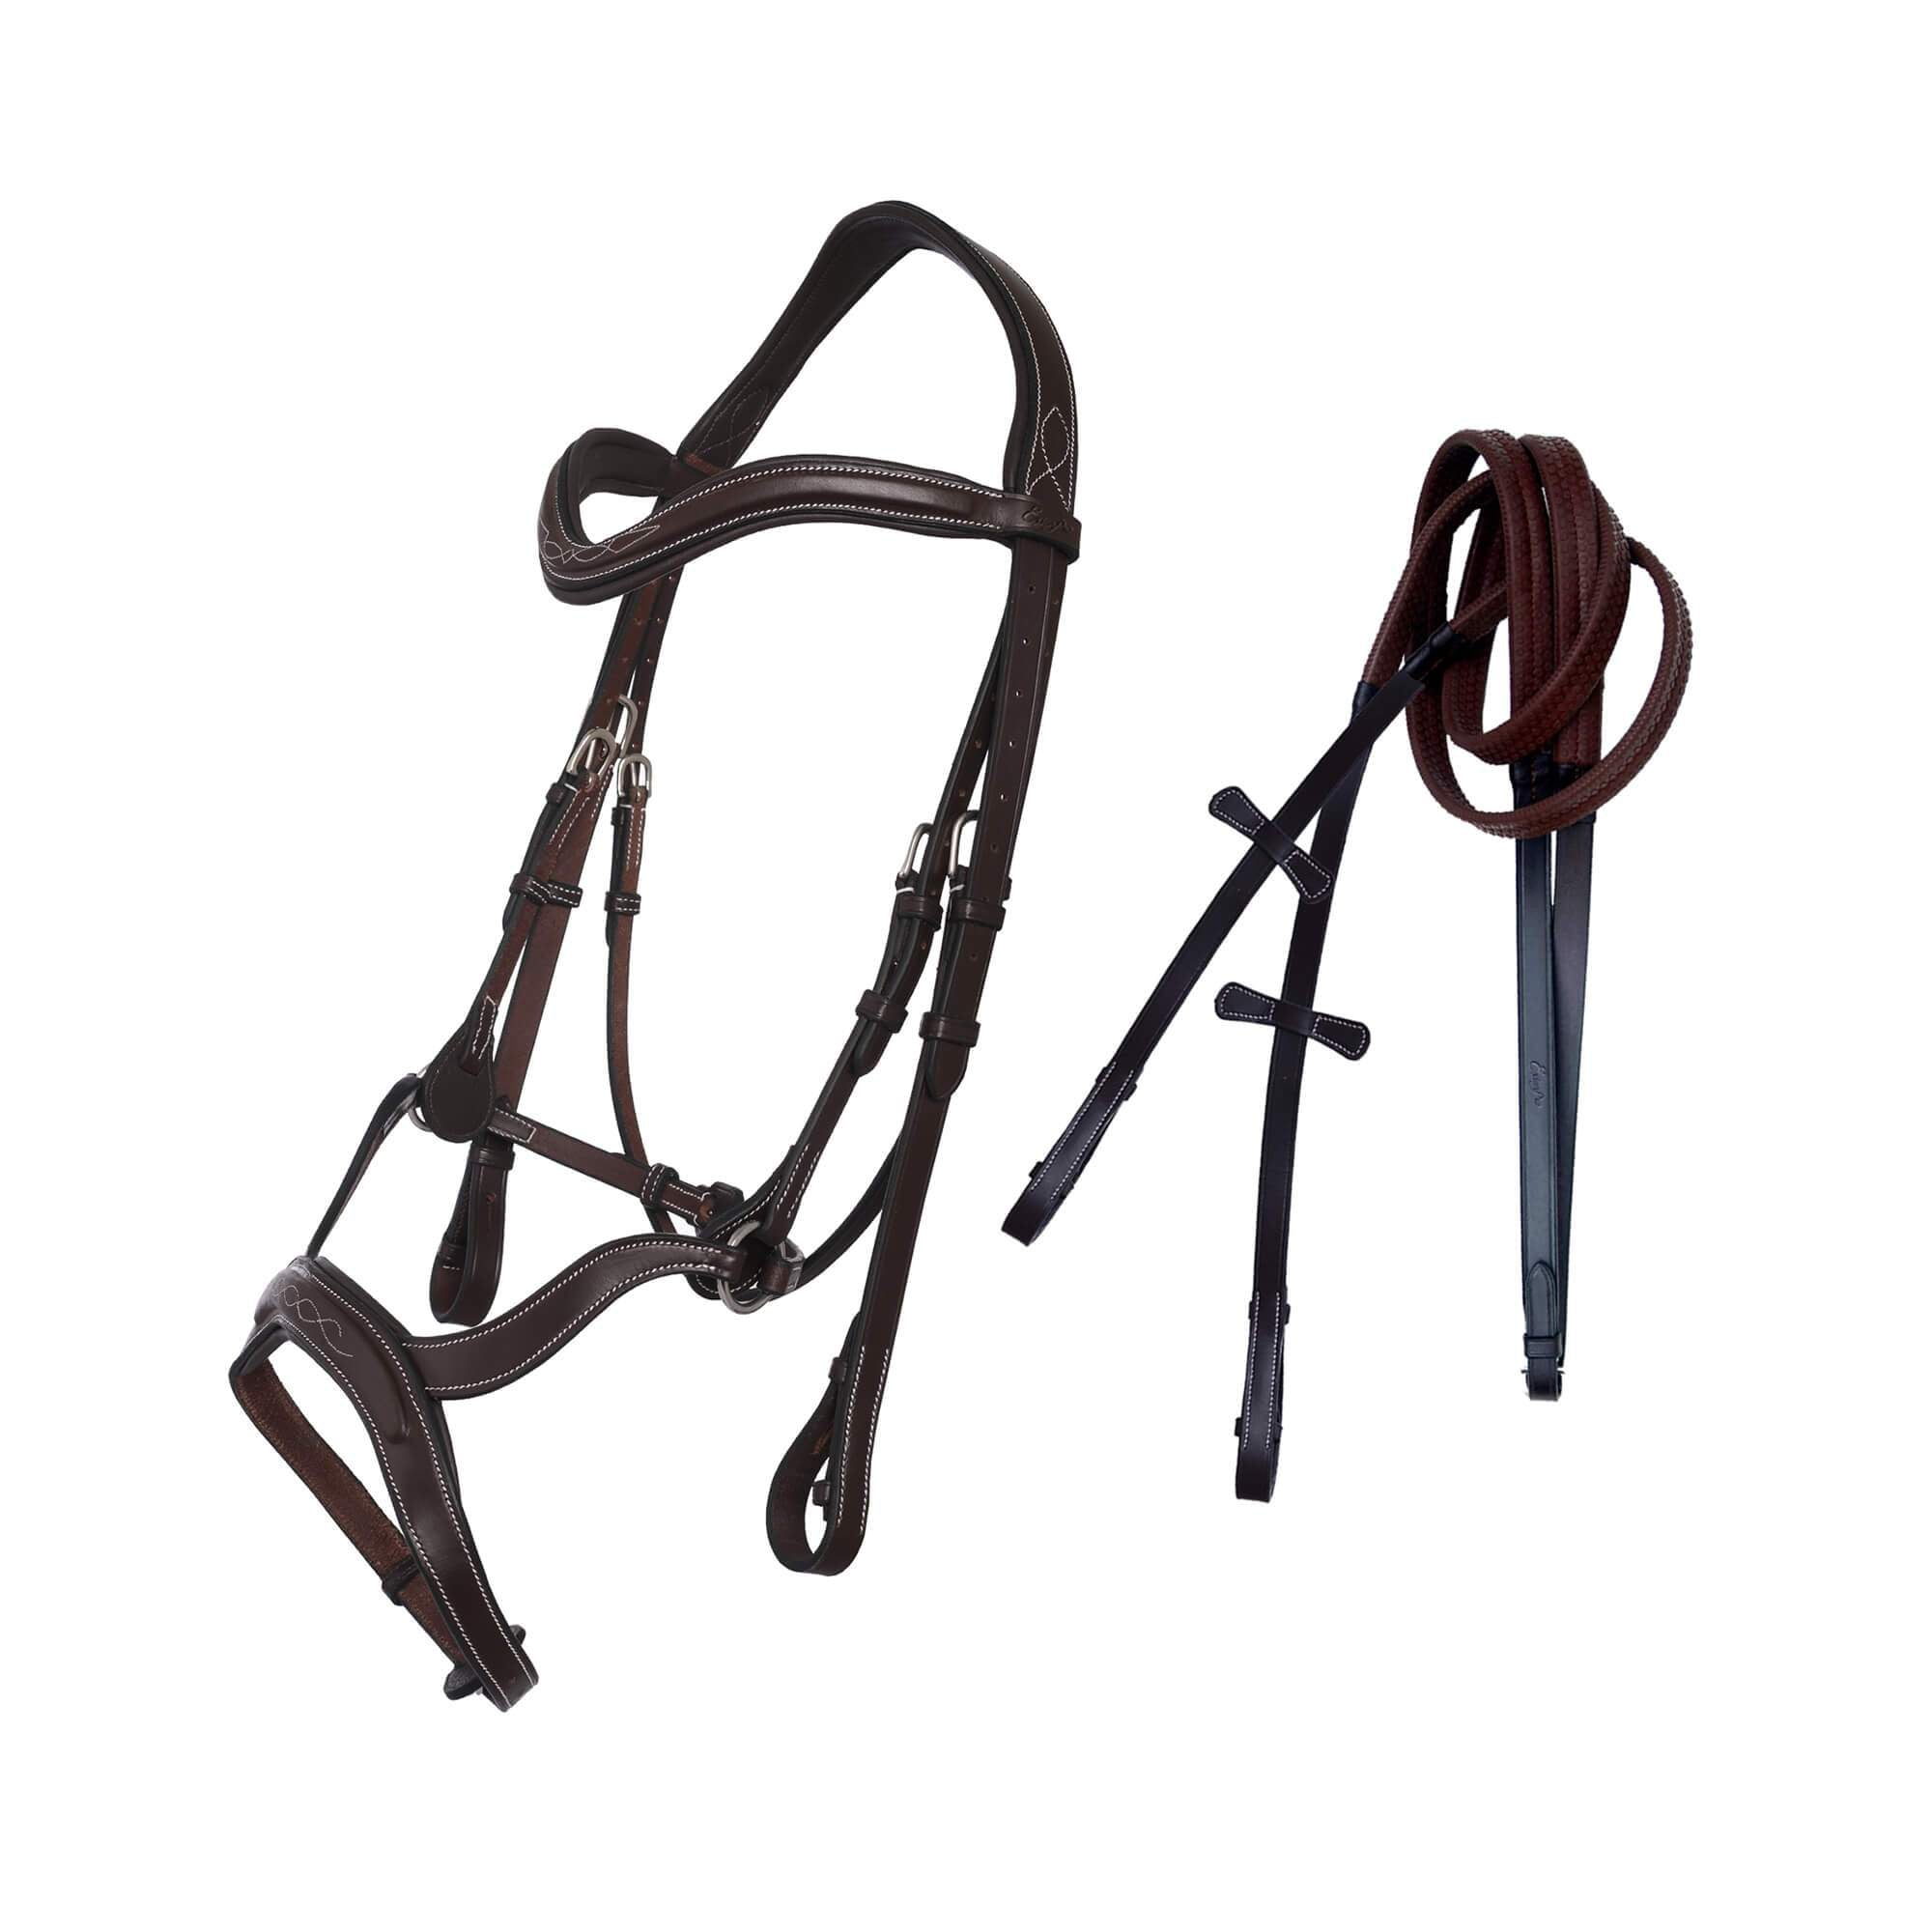 ExionPro Padded Innovative Combined Flash Unique Cut Anatomical Bridle & Reins-Bridles & Reins